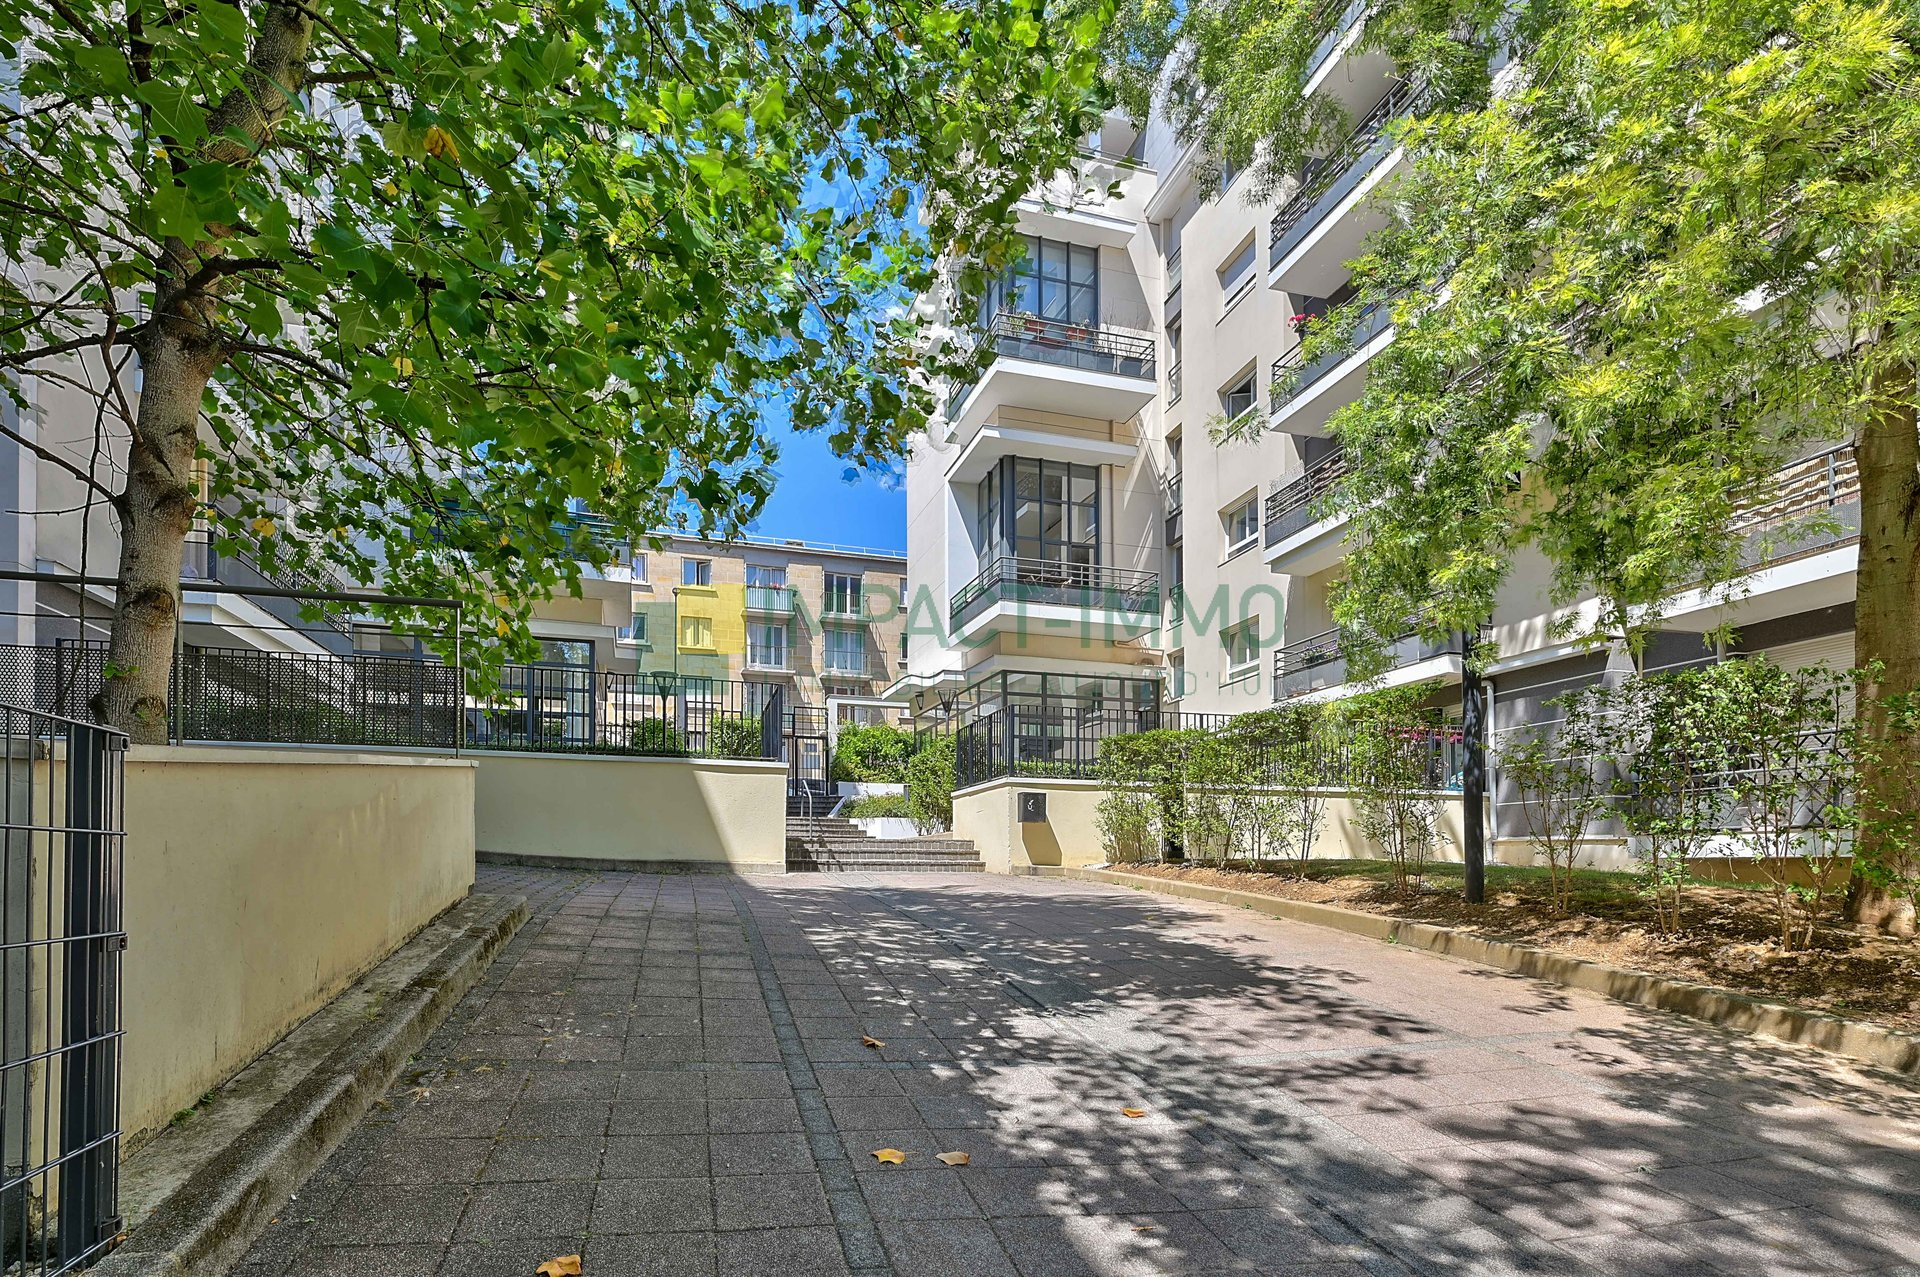 SURESNES IMMEUBLE 2008 4P 3CH 92M2 BALCON TERRASSE DOUBLE PARKING